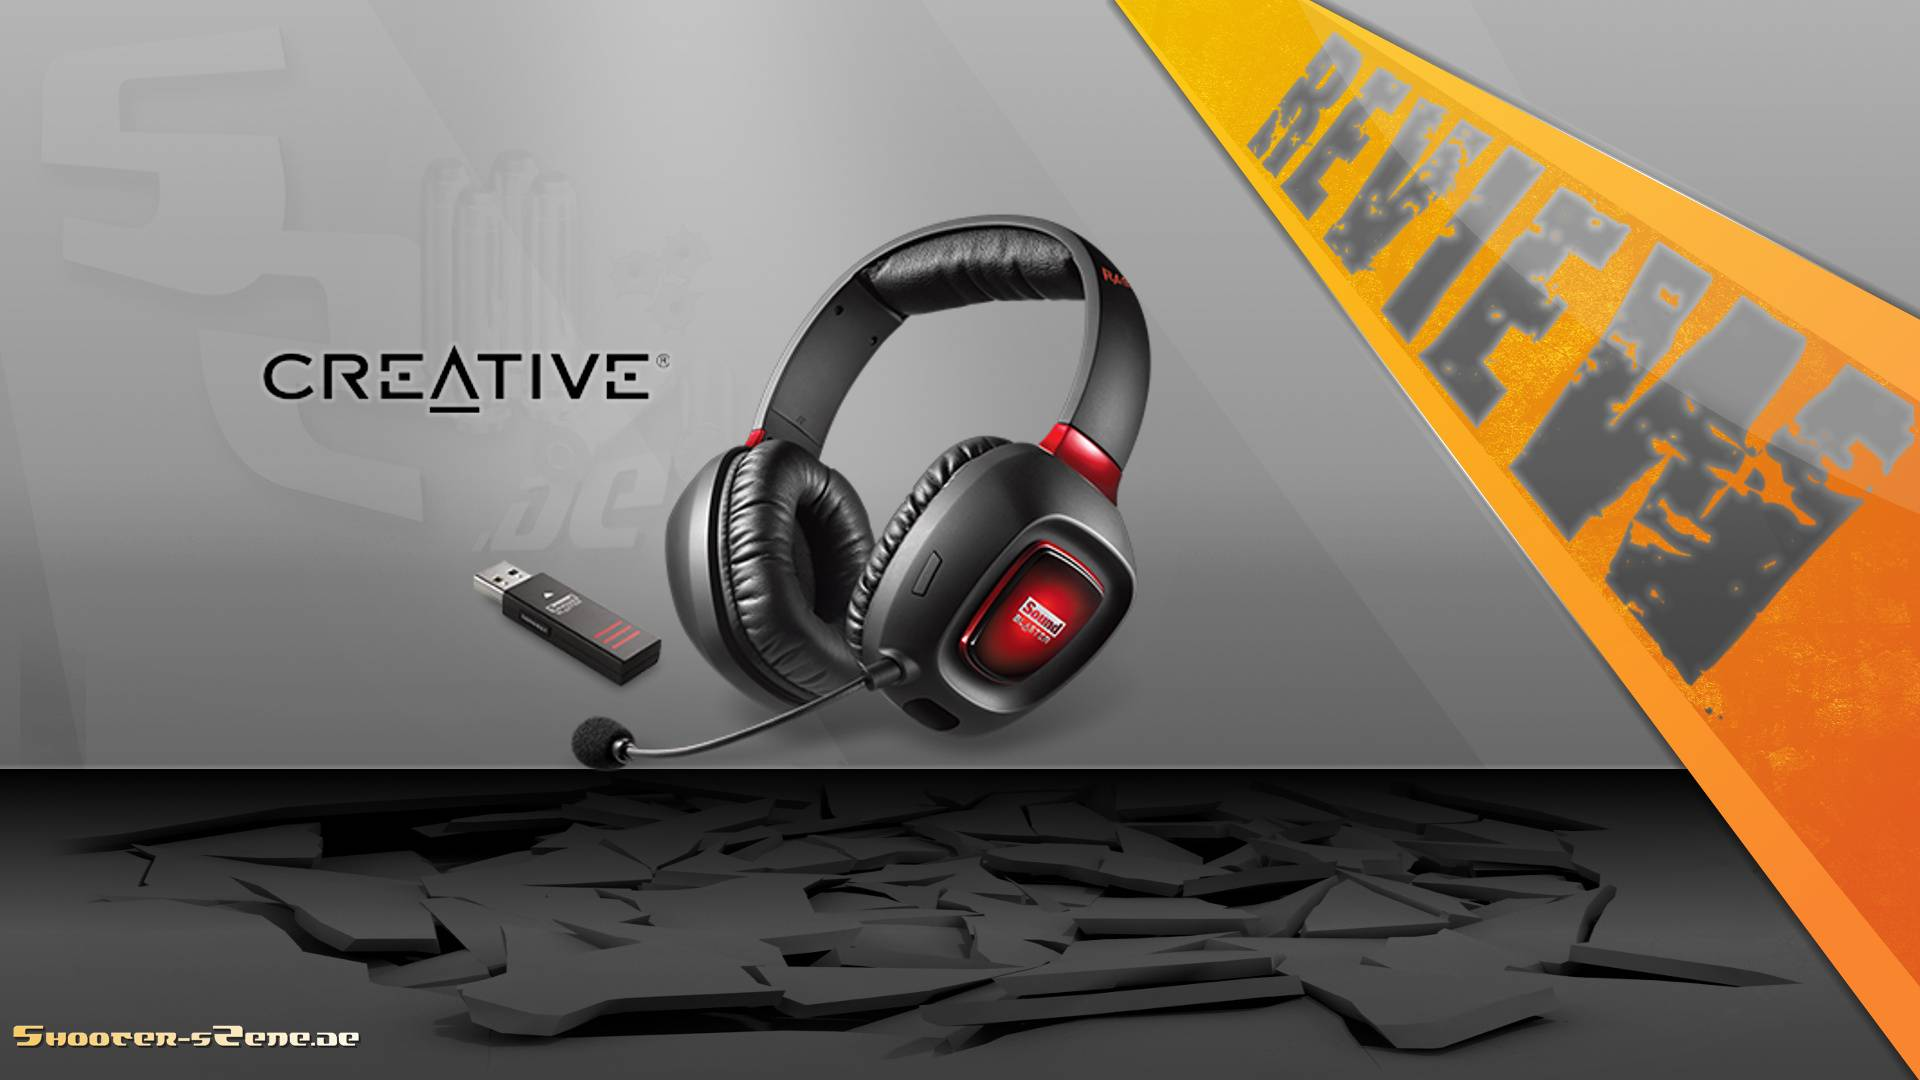 Review: Creative Soundblaster Tactic 3D Rage Wireless